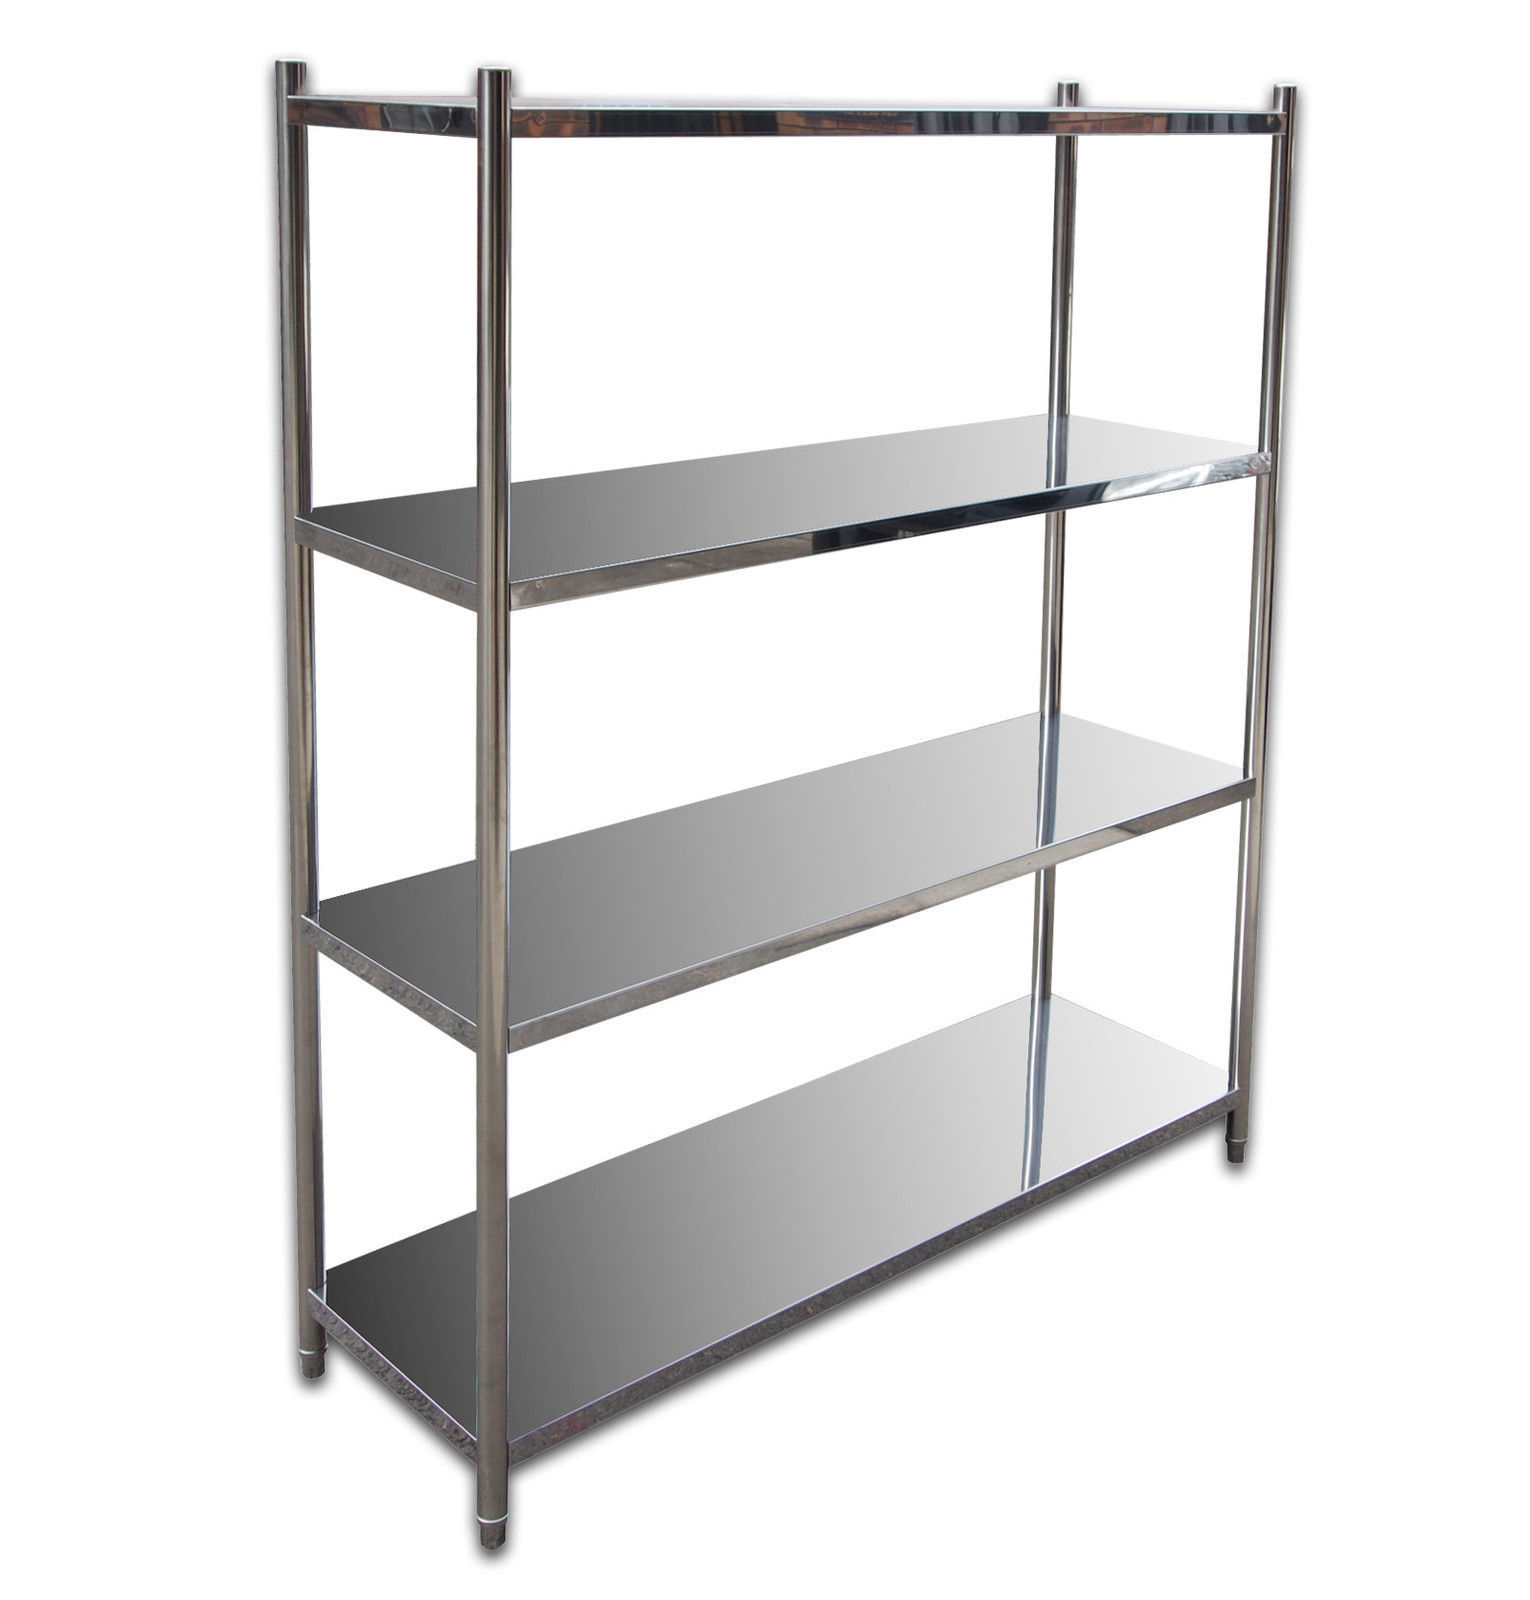 4 tier 1500mm x 500mm stainless steel shelf unit kitchen. Black Bedroom Furniture Sets. Home Design Ideas